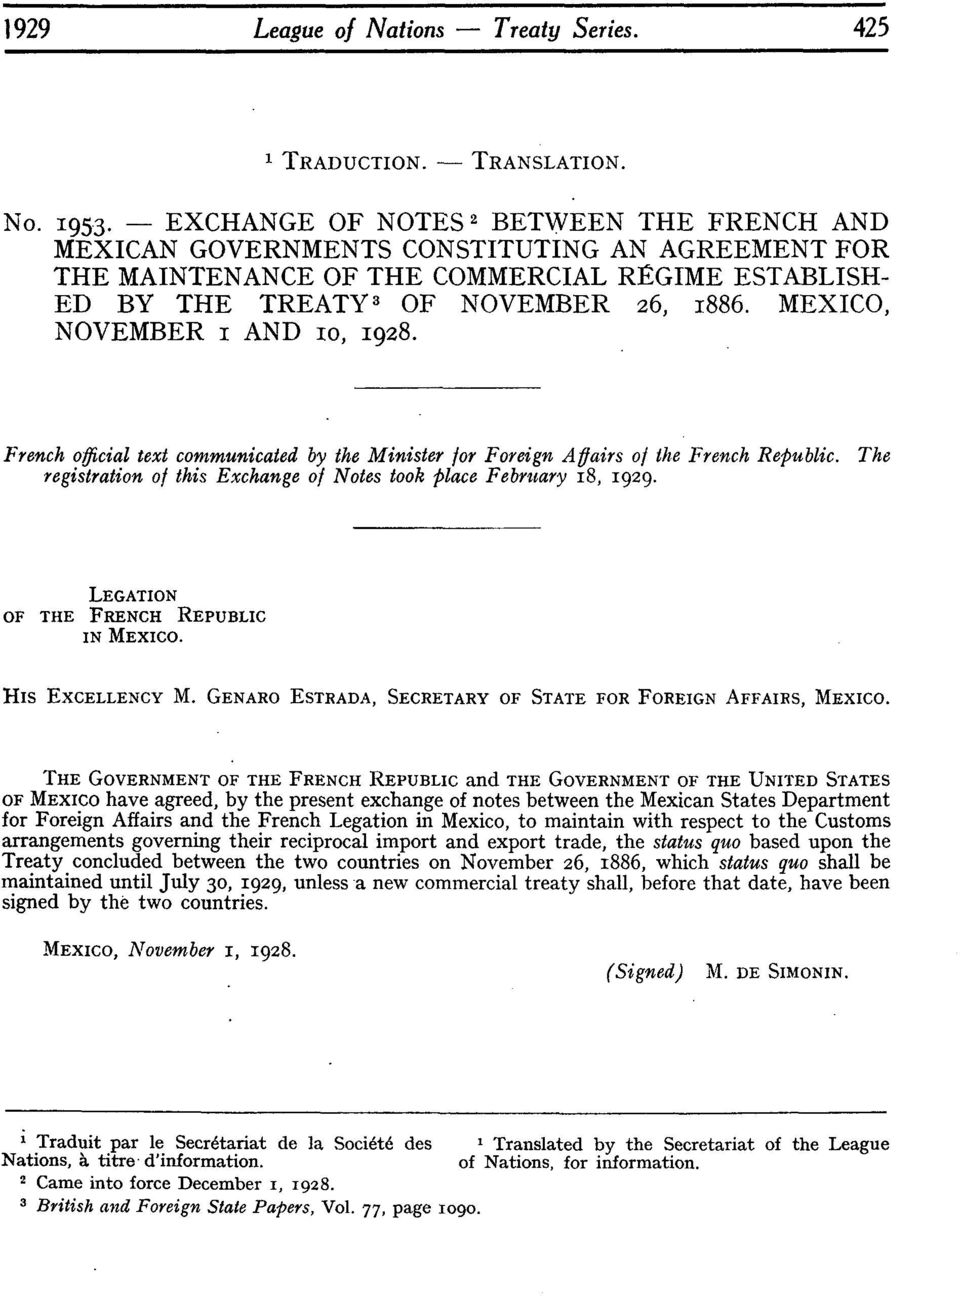 MEXICO, NOVEMBER i AND IO, 1928. French official text communicated by the Minister for Foreign Afairs of the French Republic. The registration of this Exchange of Notes took place February 18, 1929.